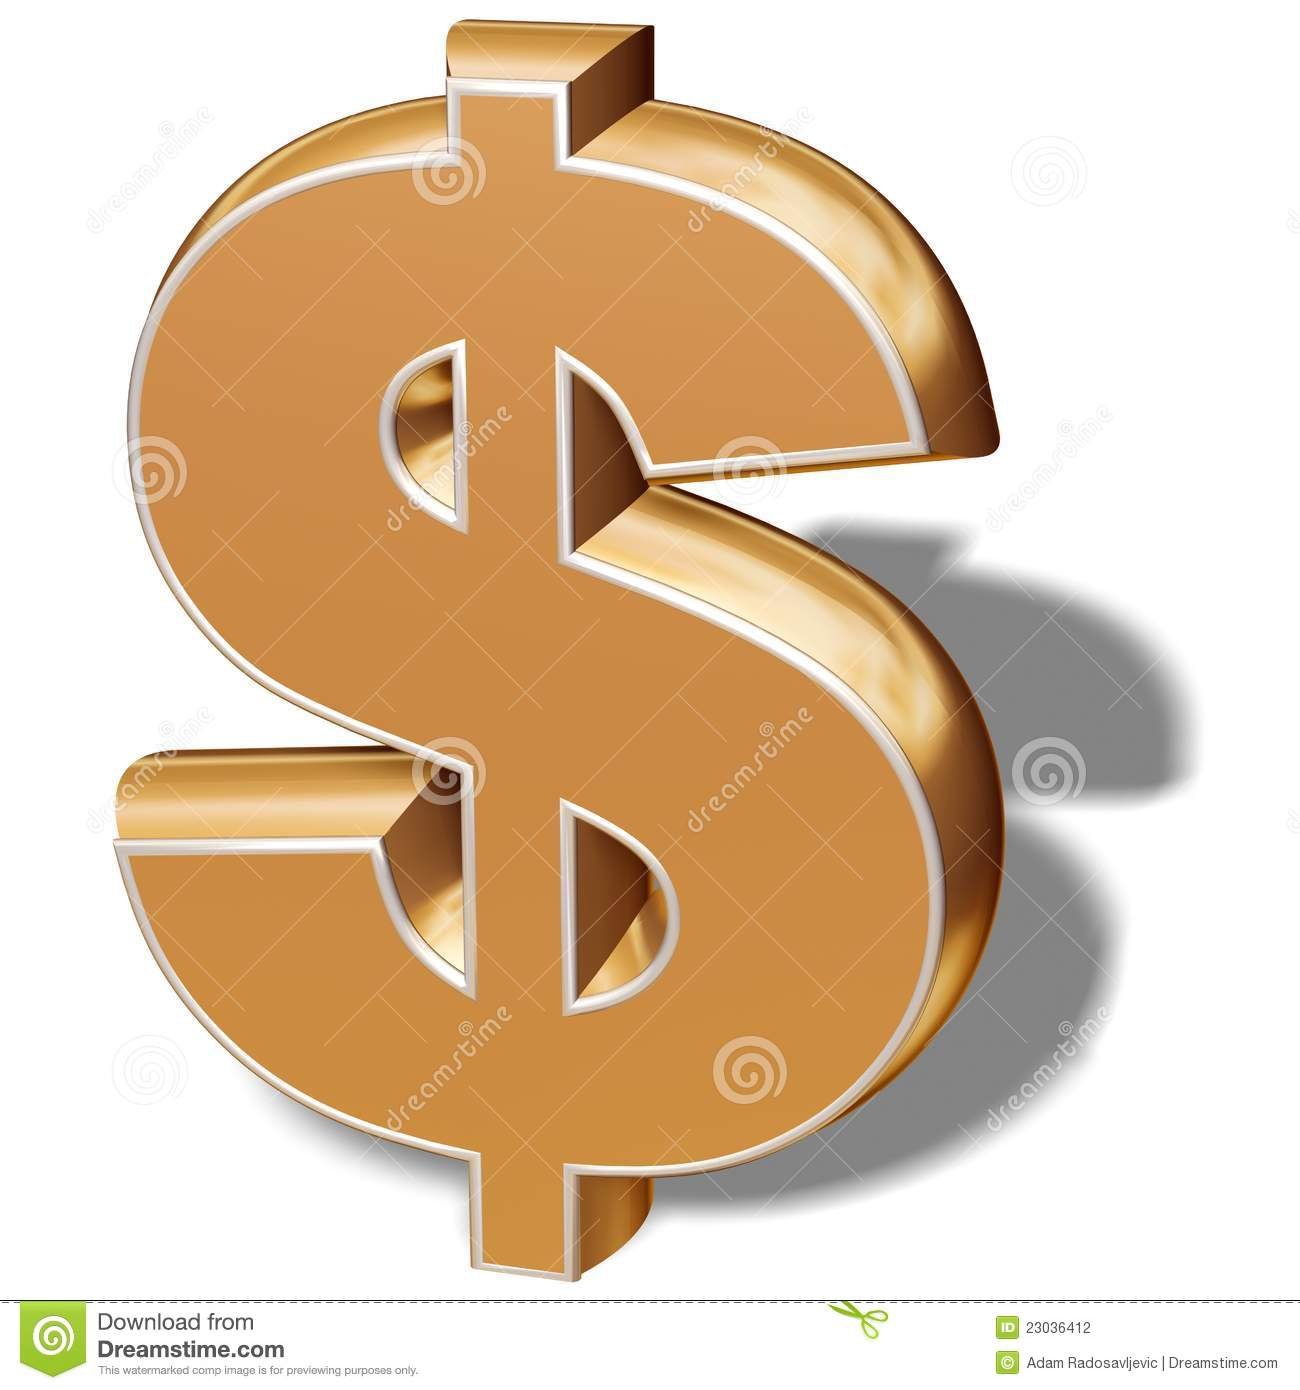 3d euro currency symbol stock photo image of banknote 23036412 3d euro currency symbol buycottarizona Choice Image